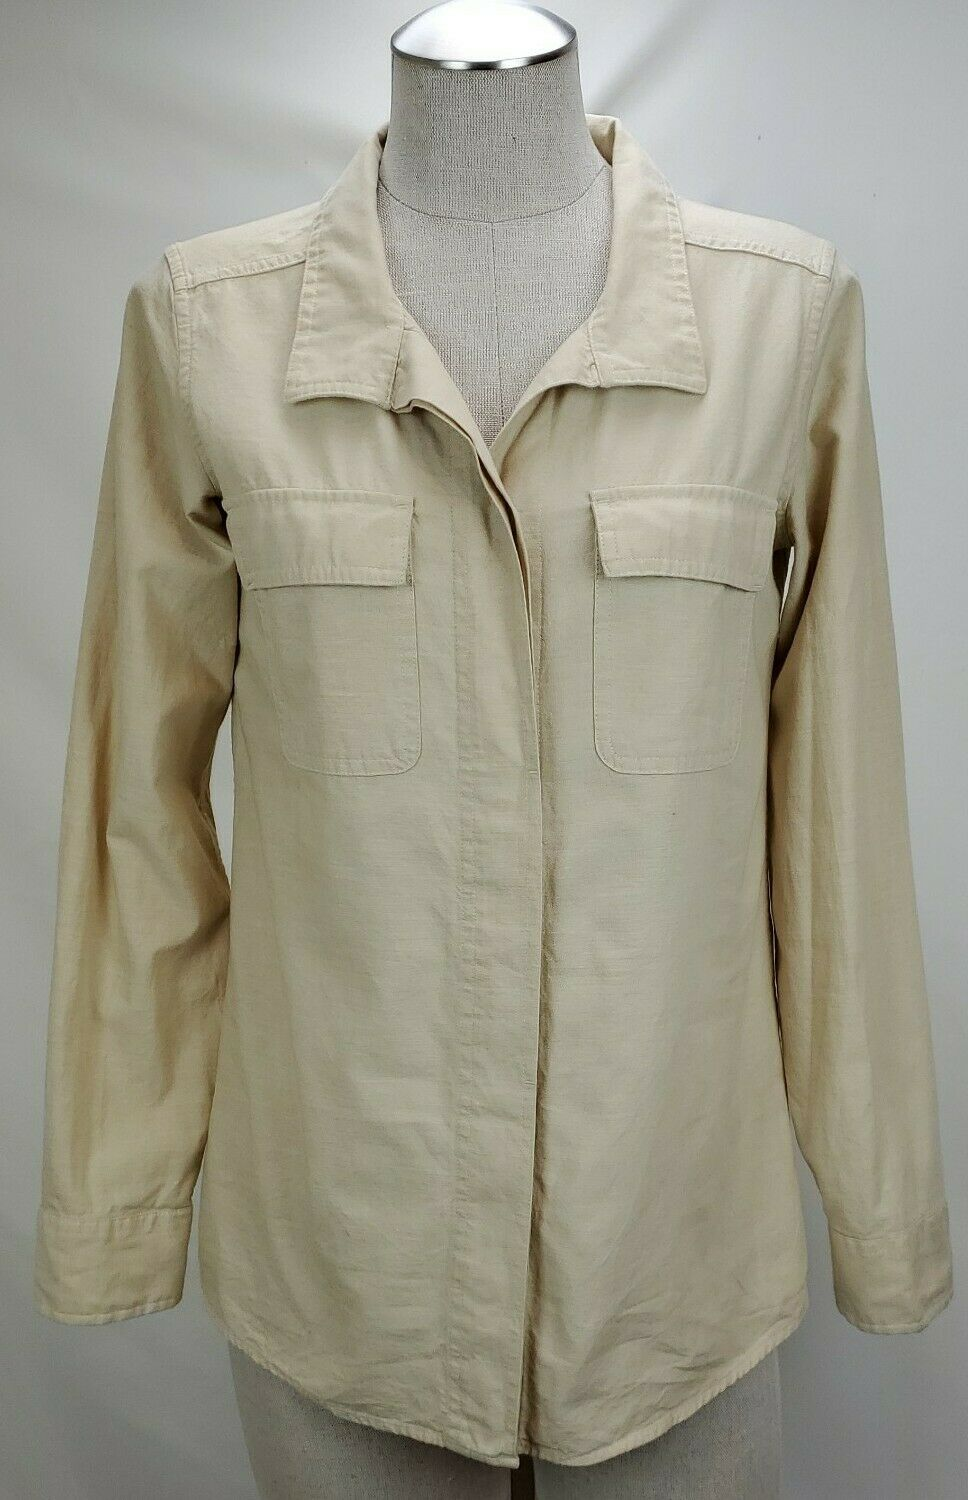 Patagonia Womens Organic Cotton Button Down Shirt Size 4 Small Ivory Long Sleeve